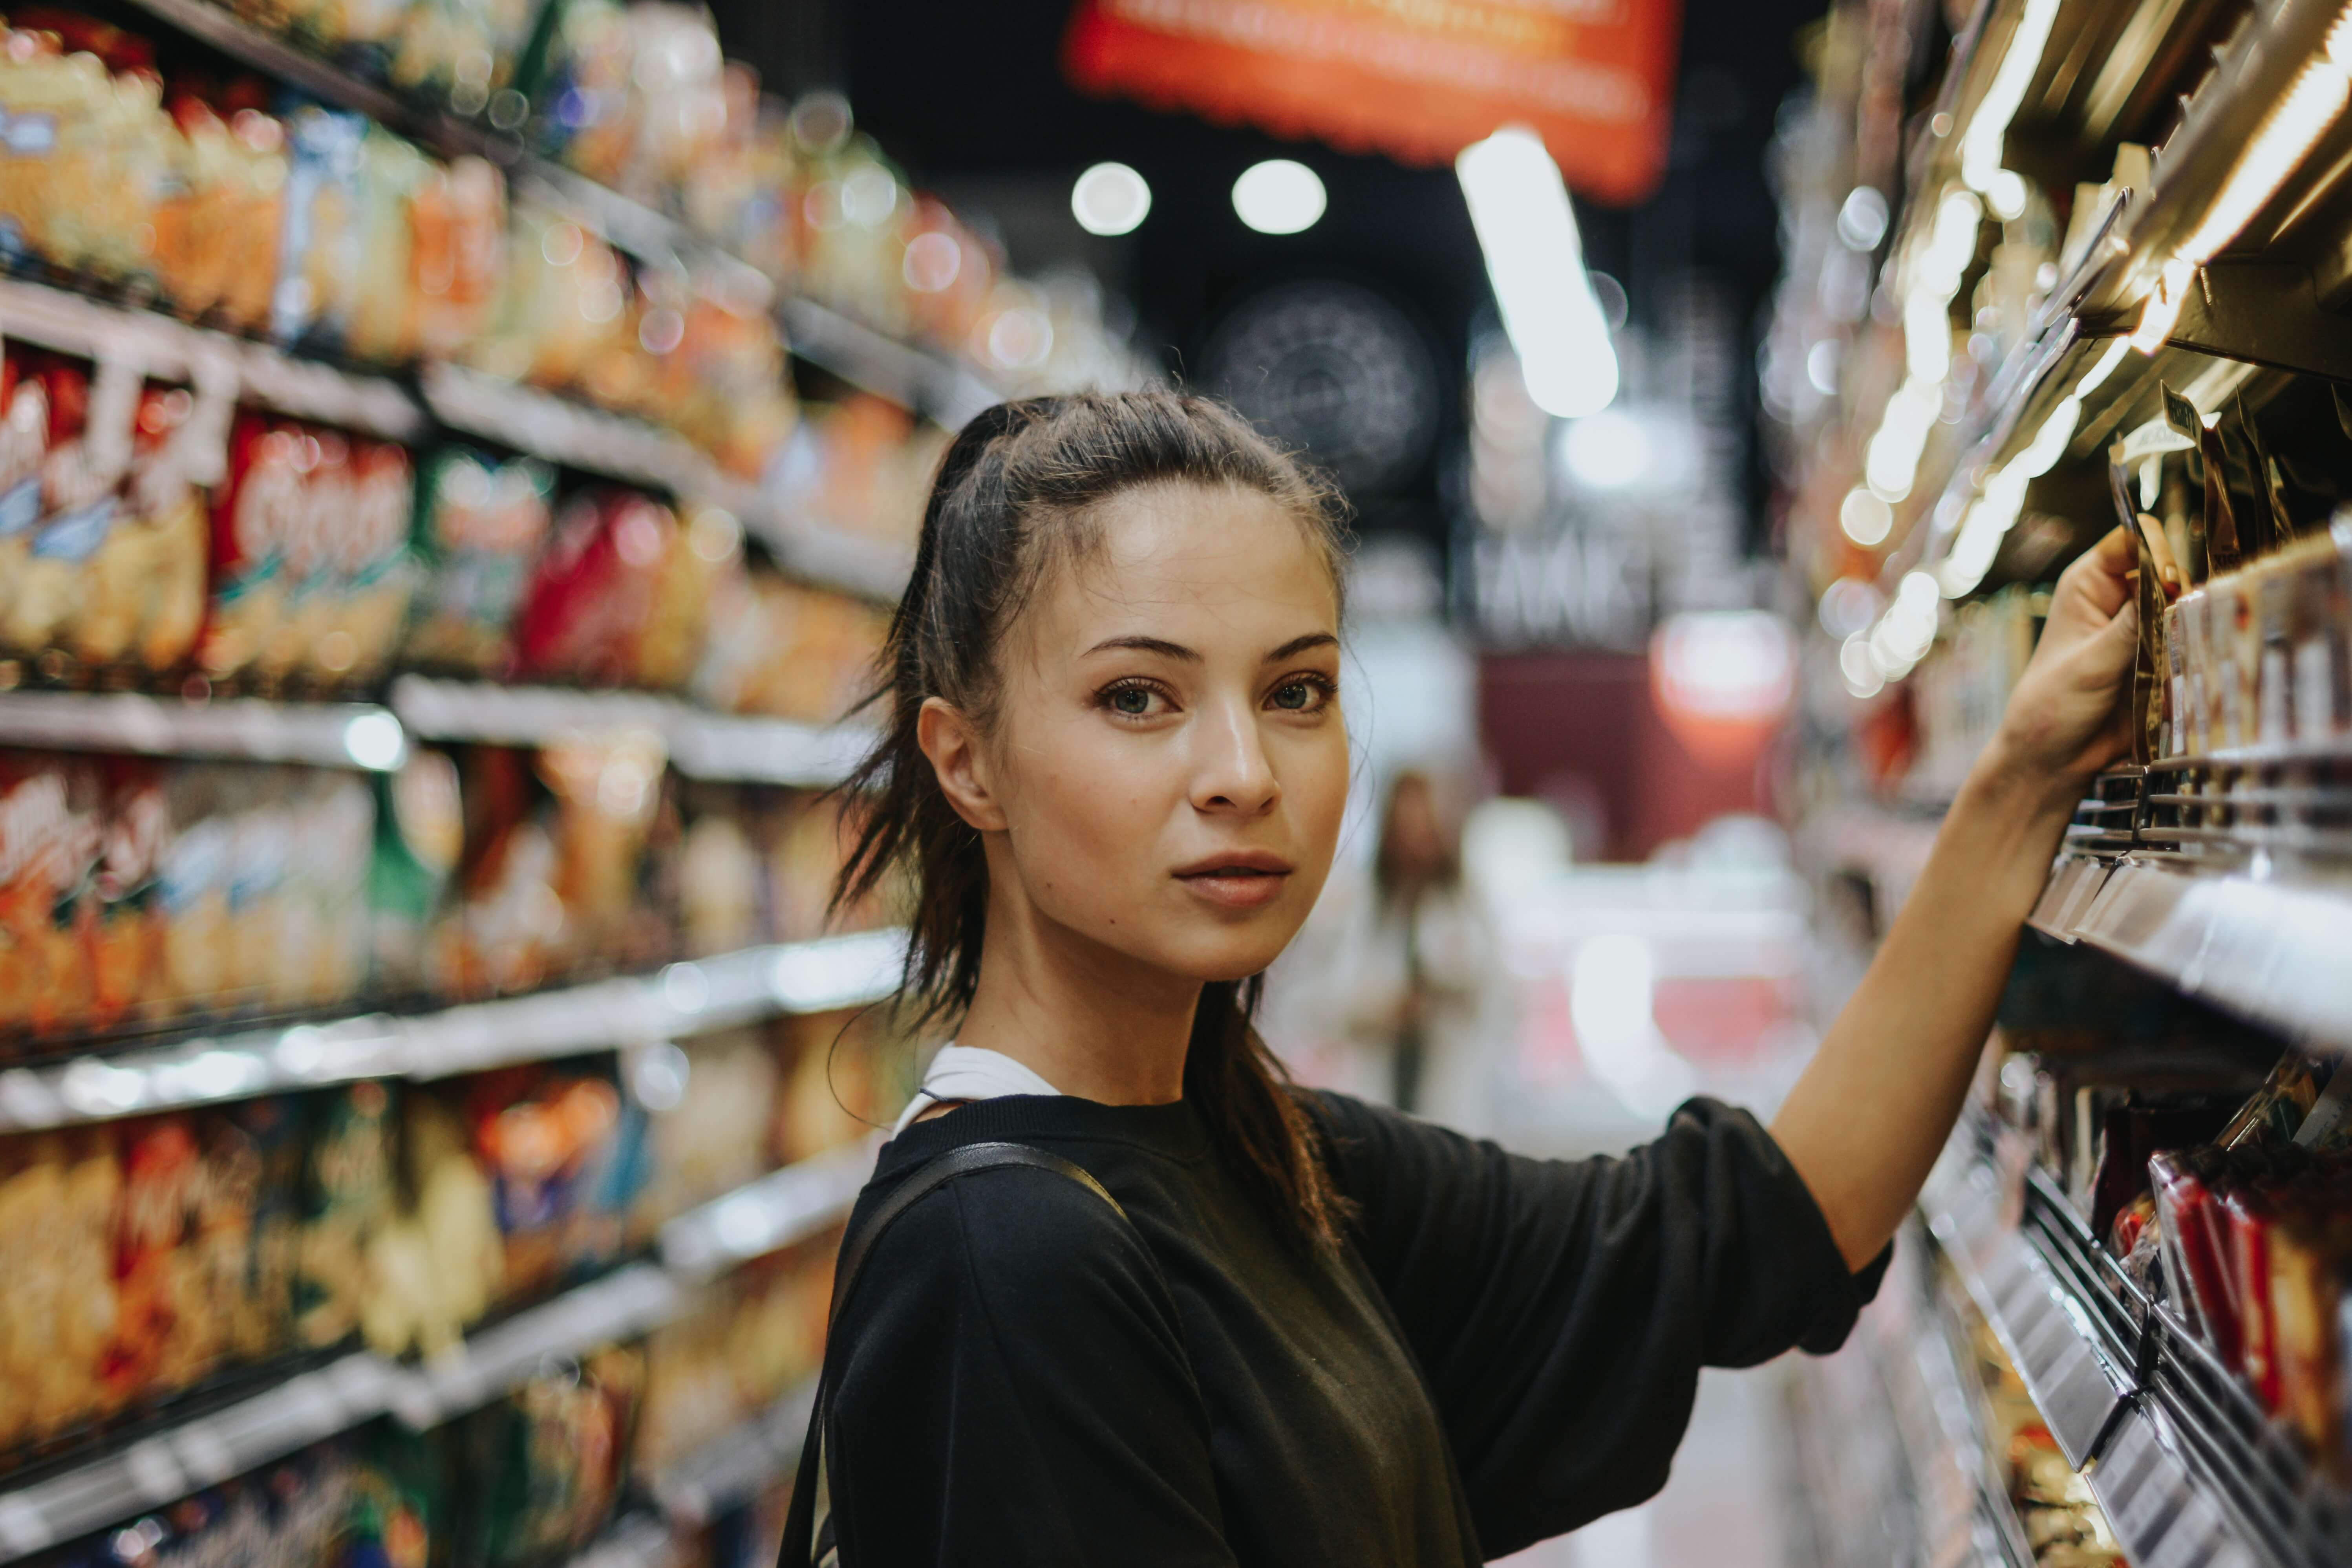 How much can i earn as a store clerk